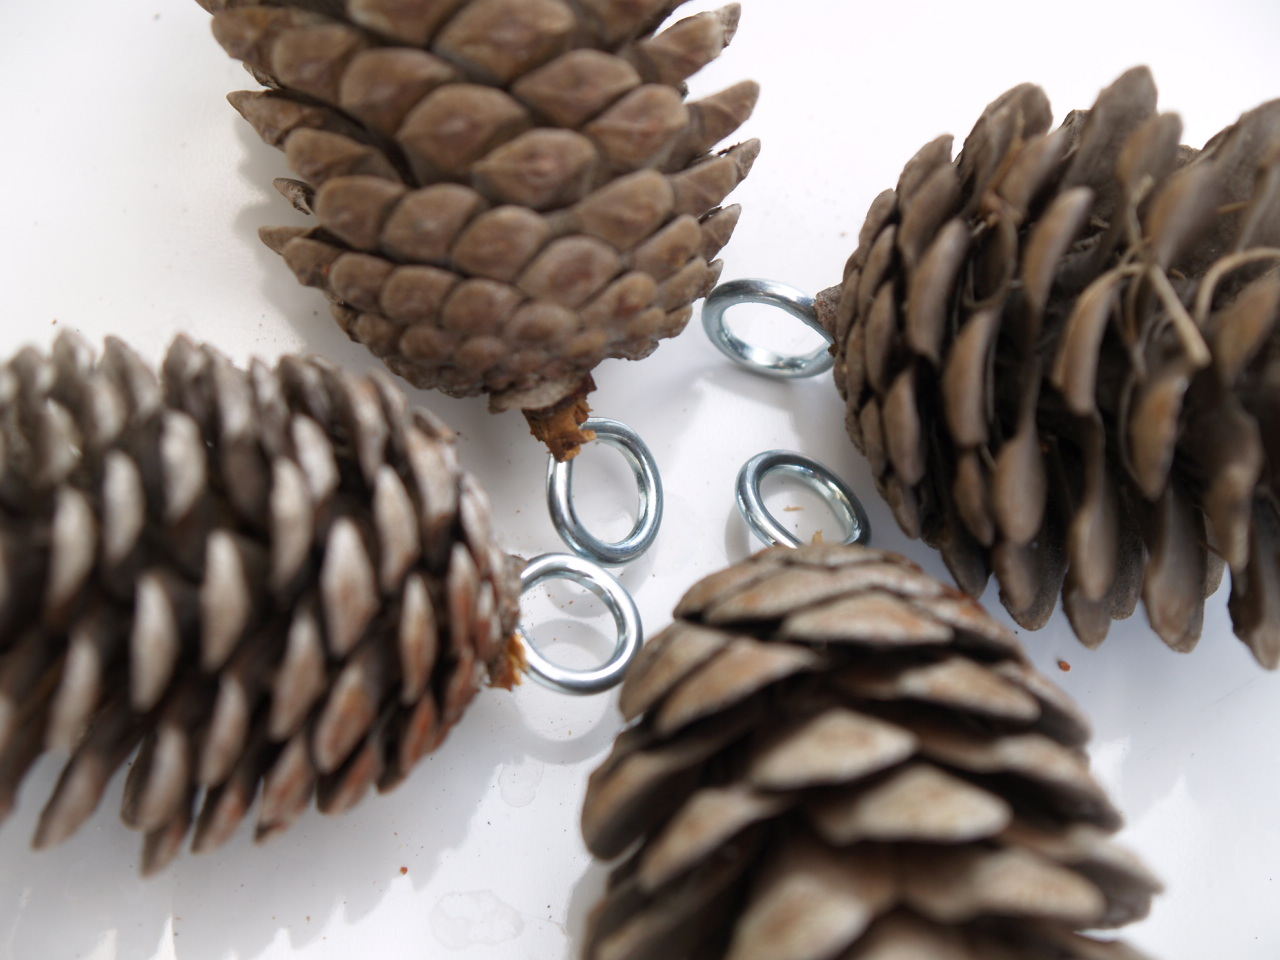 Let's make wax-dipped Pine Cone Ornaments. - The Magic Onions